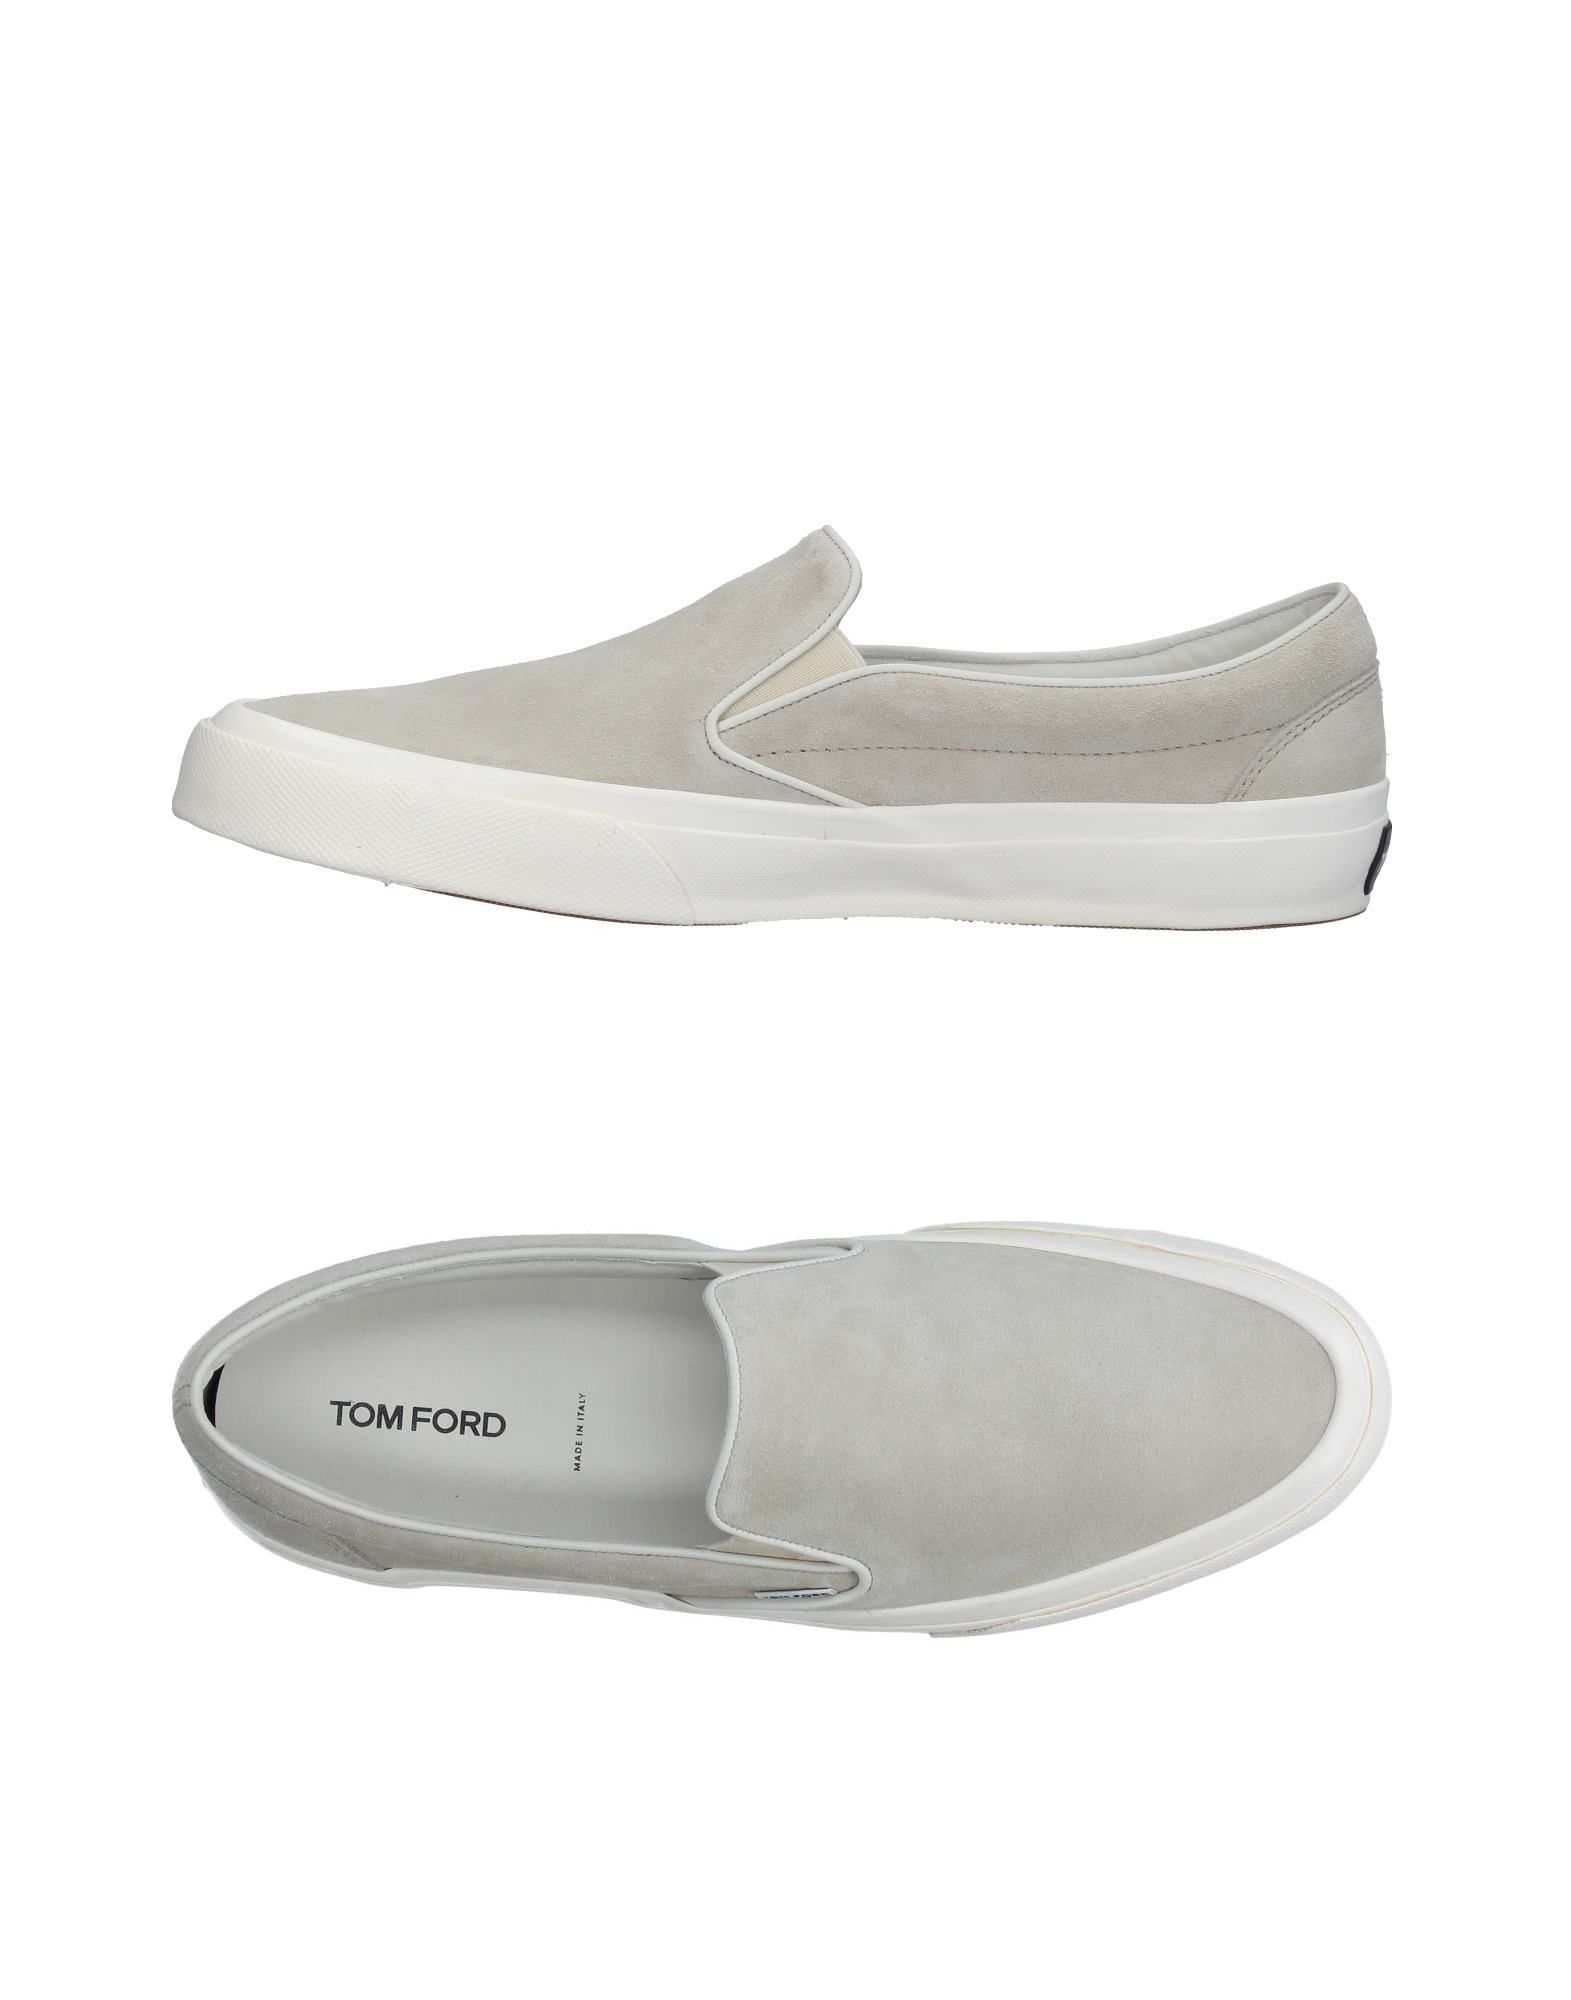 Sneakers Tom Ford Donna - Acquista online su